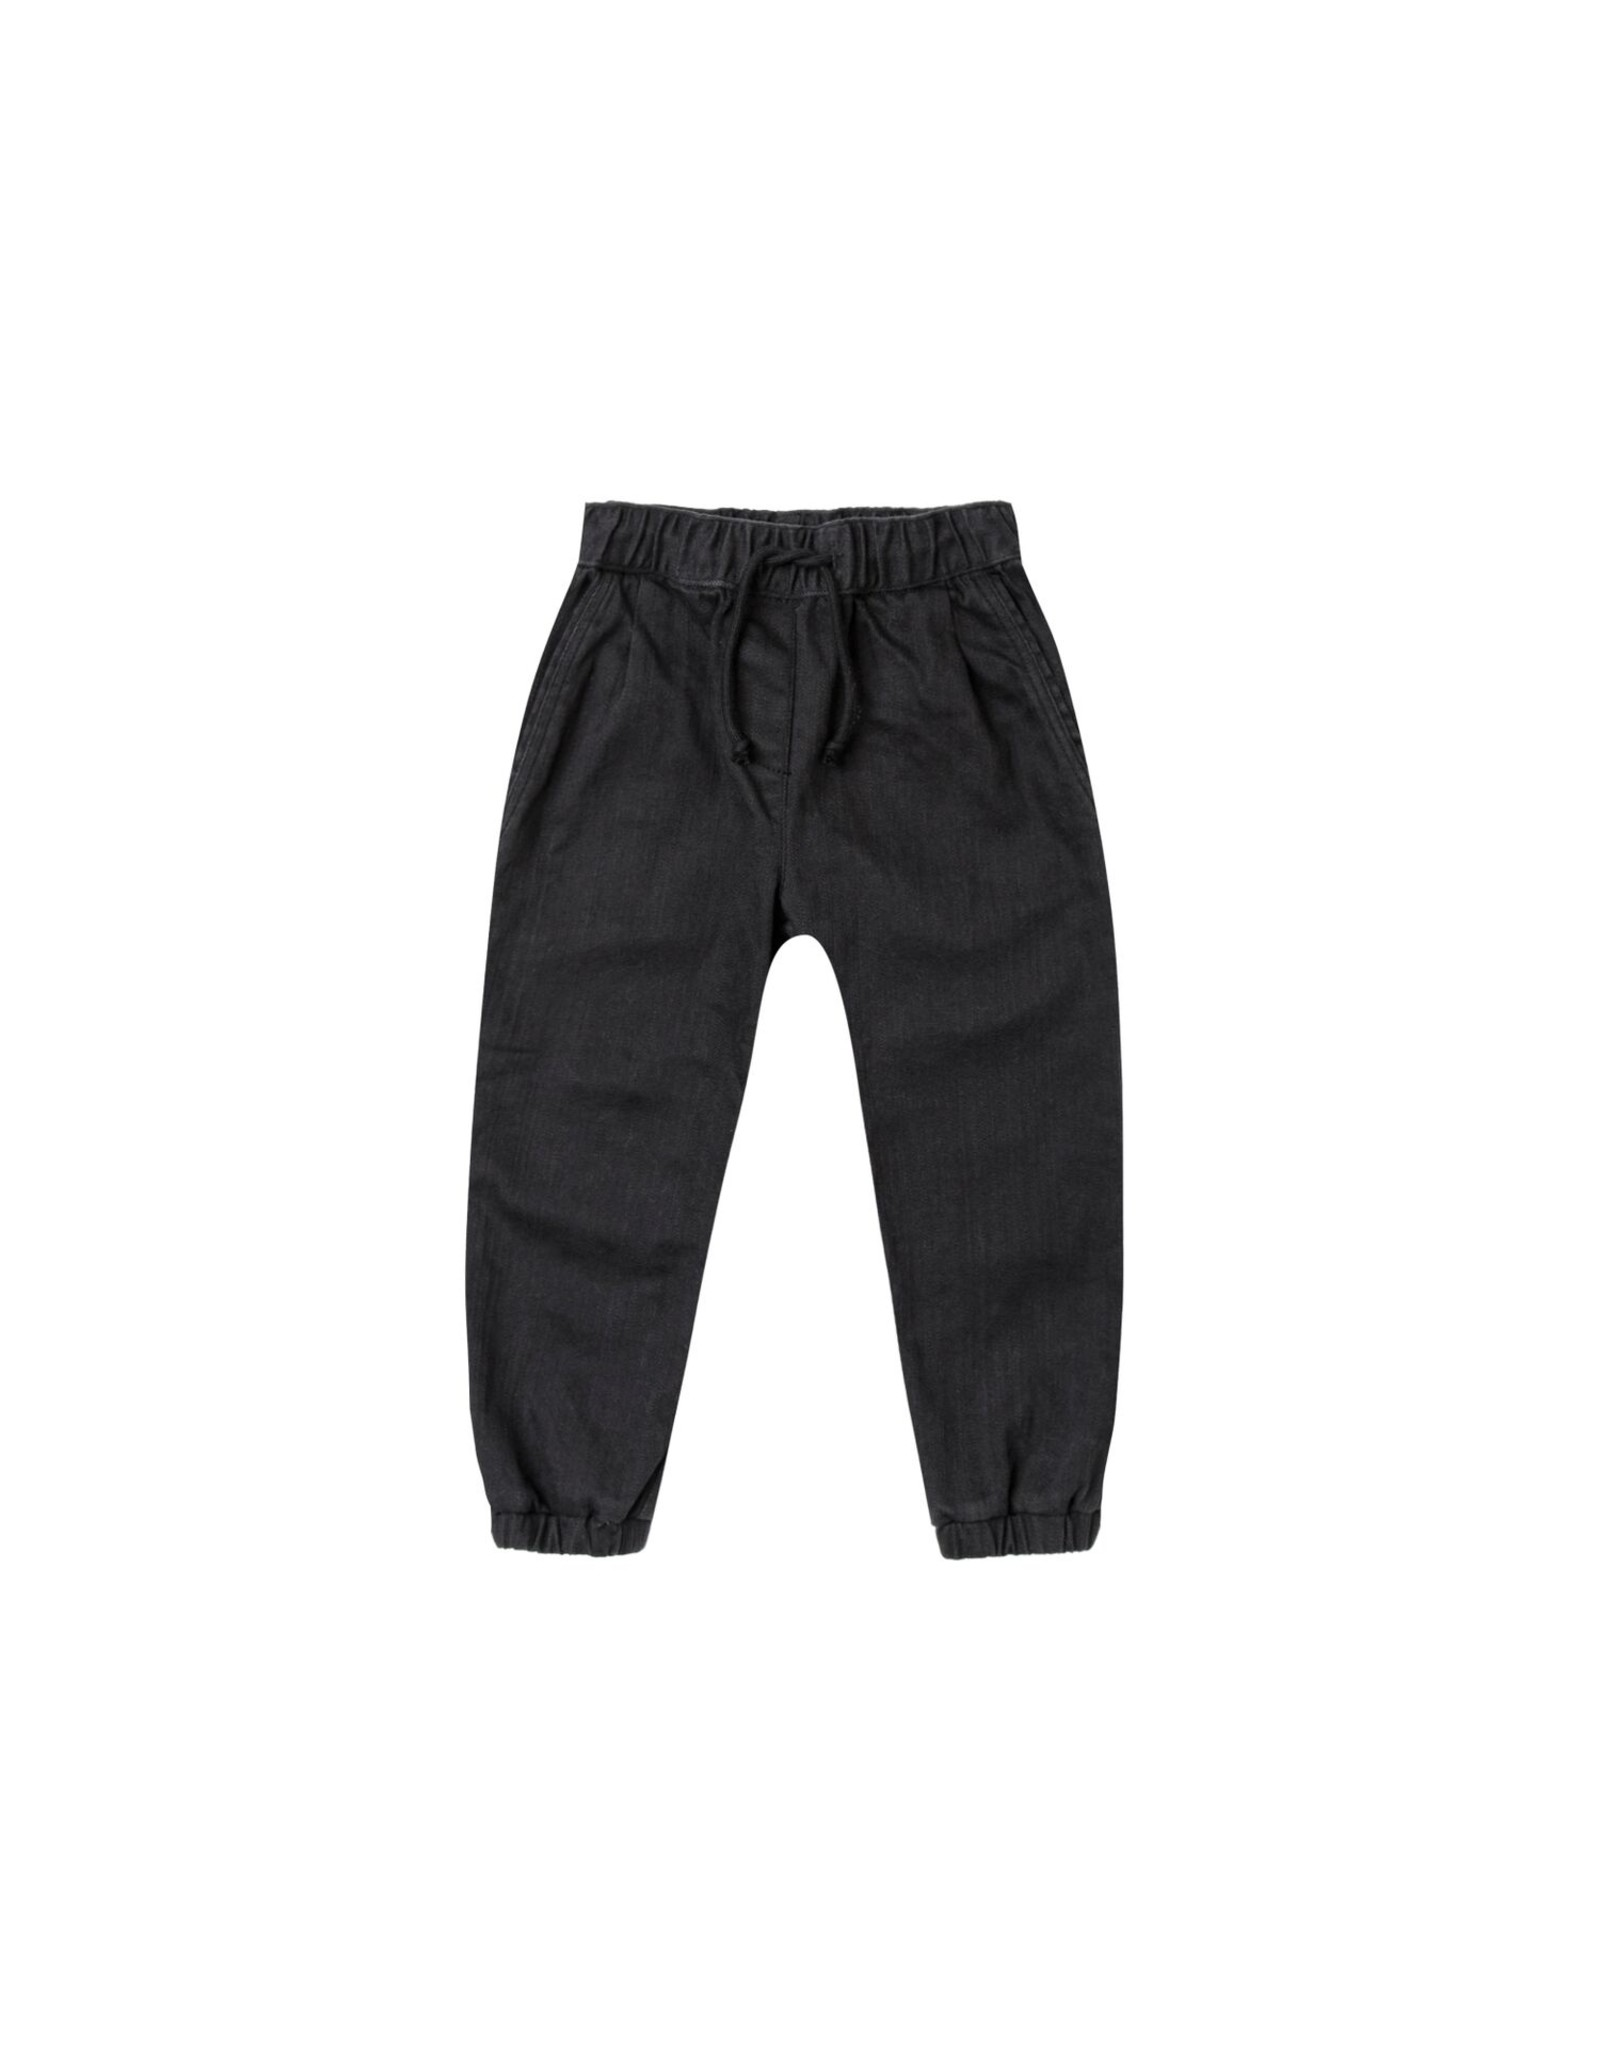 Rylee and Cru beau pant- black